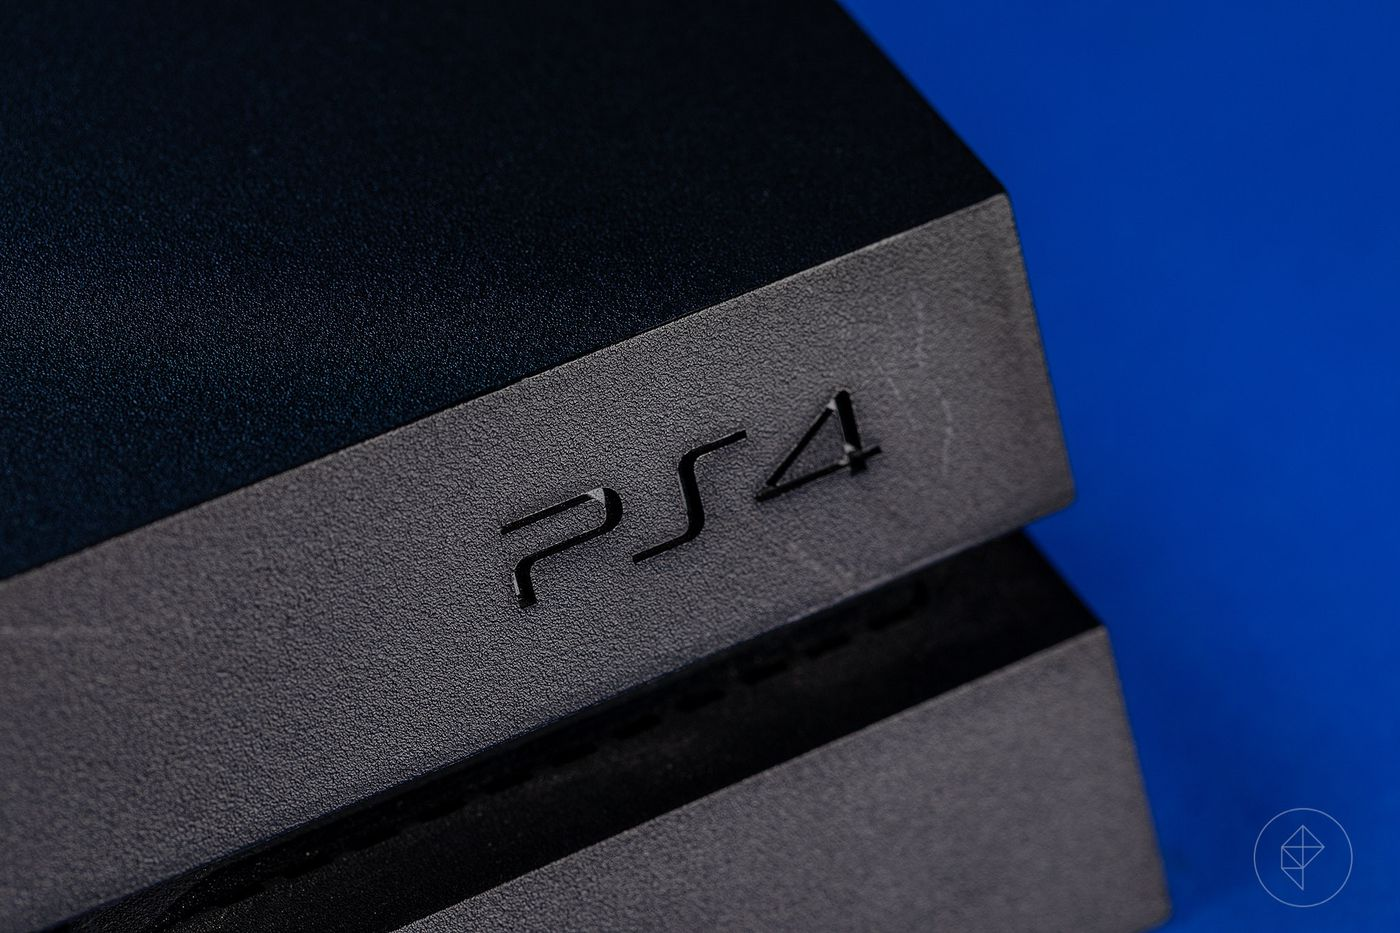 PlayStation 4 re-review, five years in - Polygon